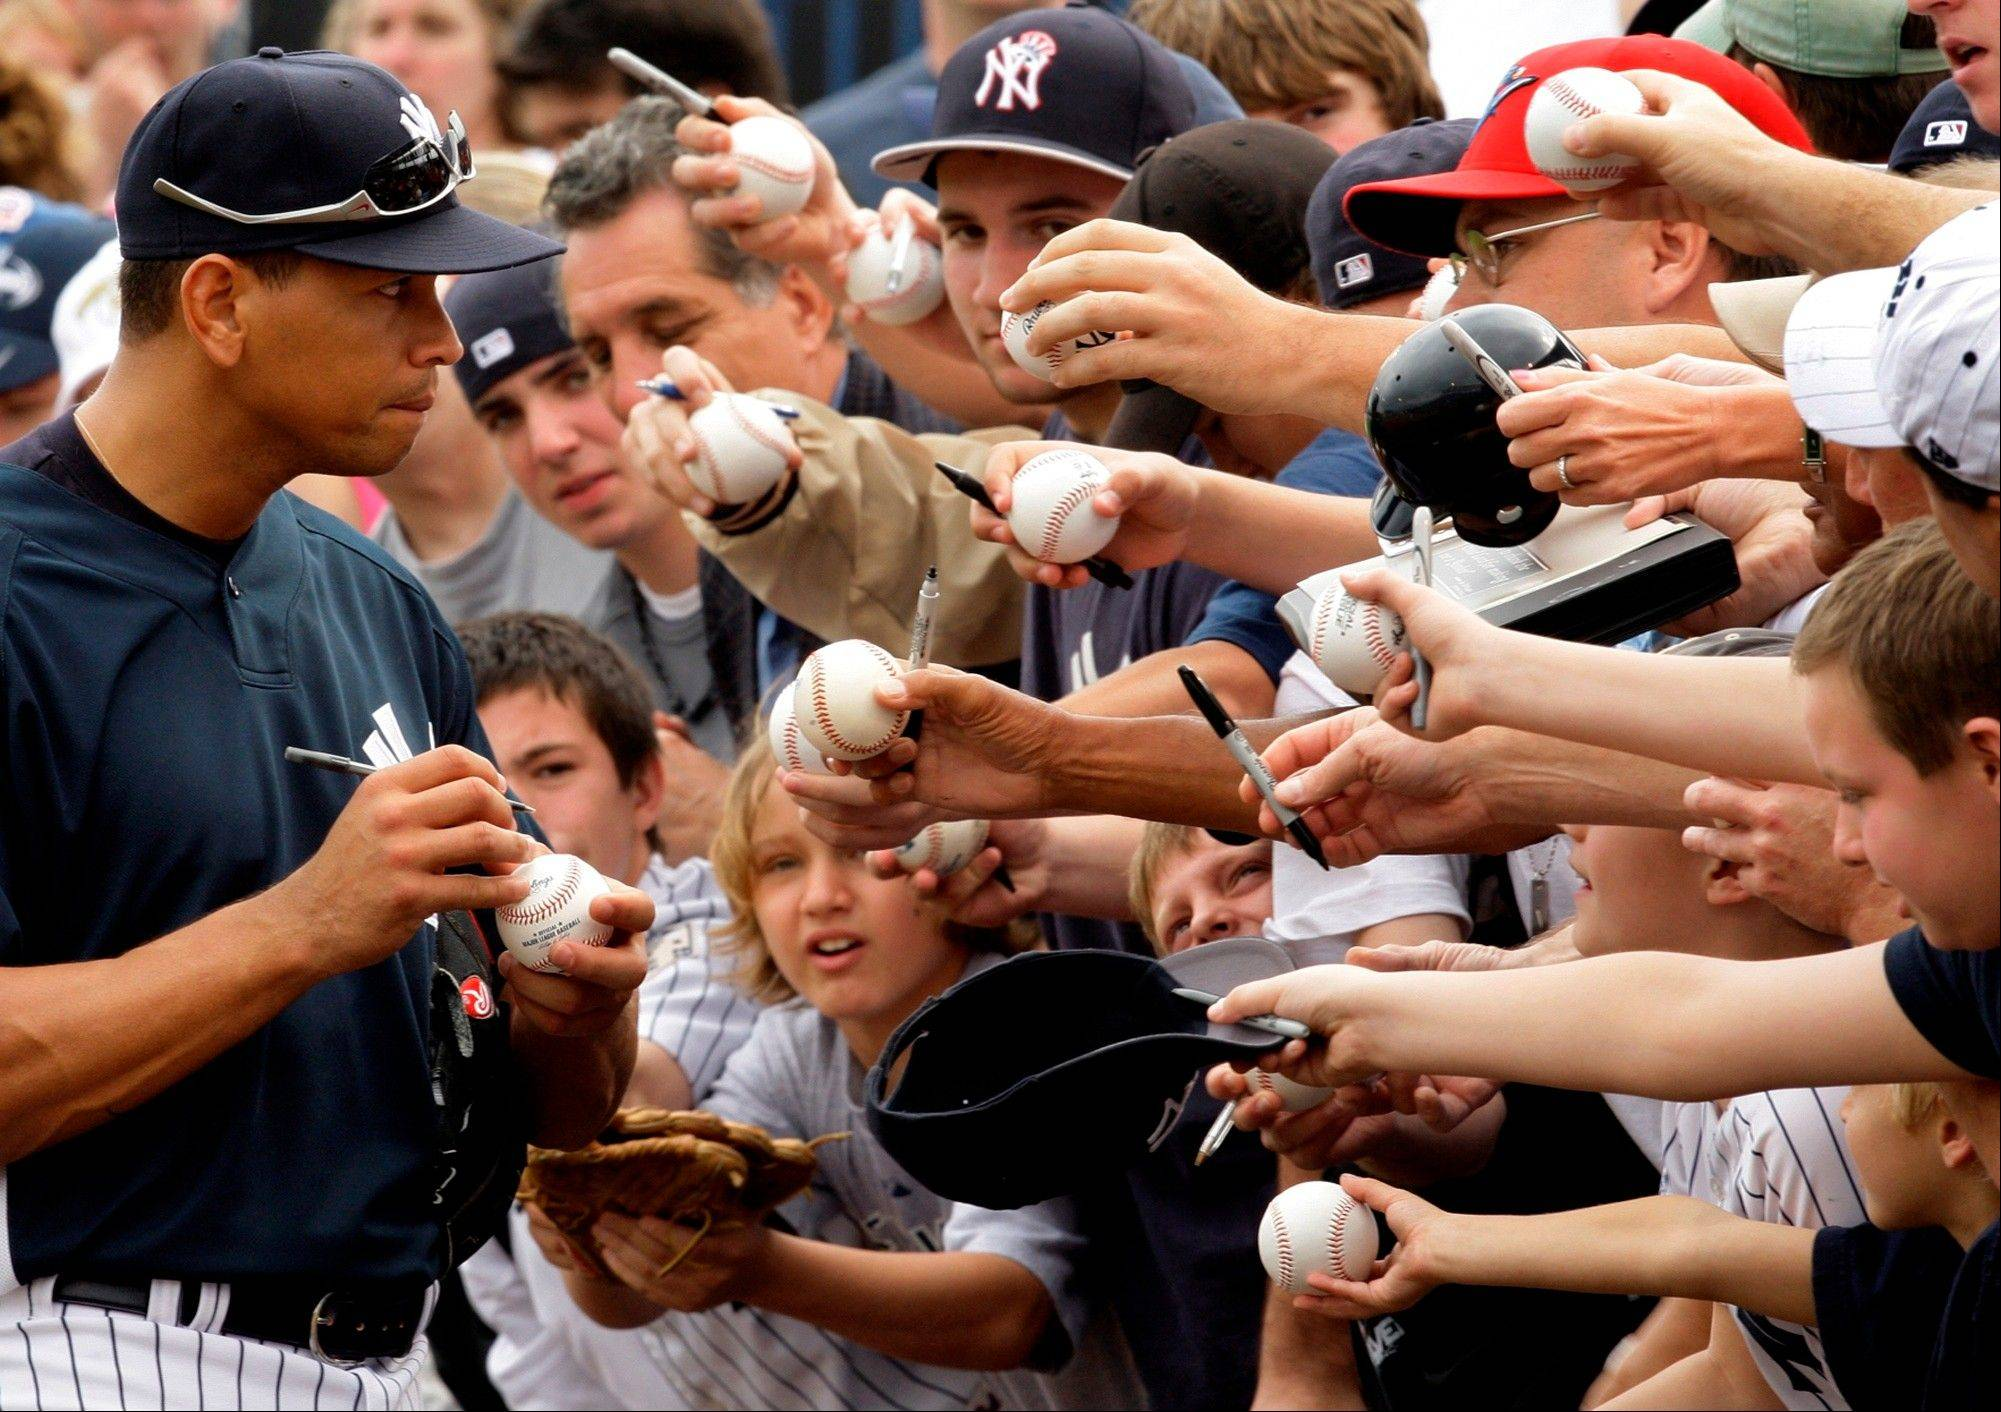 FILE - In this Feb. 19, 2009, file photo, New York Yankees' Alex Rodriguez, left, signs autographs during a spring training baseball workout in Tampa, Fla. Three MVP awards, 14 All-Star selections, two record-setting contracts and countless controversies later, A-Rod is the biggest and wealthiest target of an investigation into performance-enhancing drugs, with a decision from baseball Commissioner Bud Selig expected on Monday, Aug. 5, 2013.